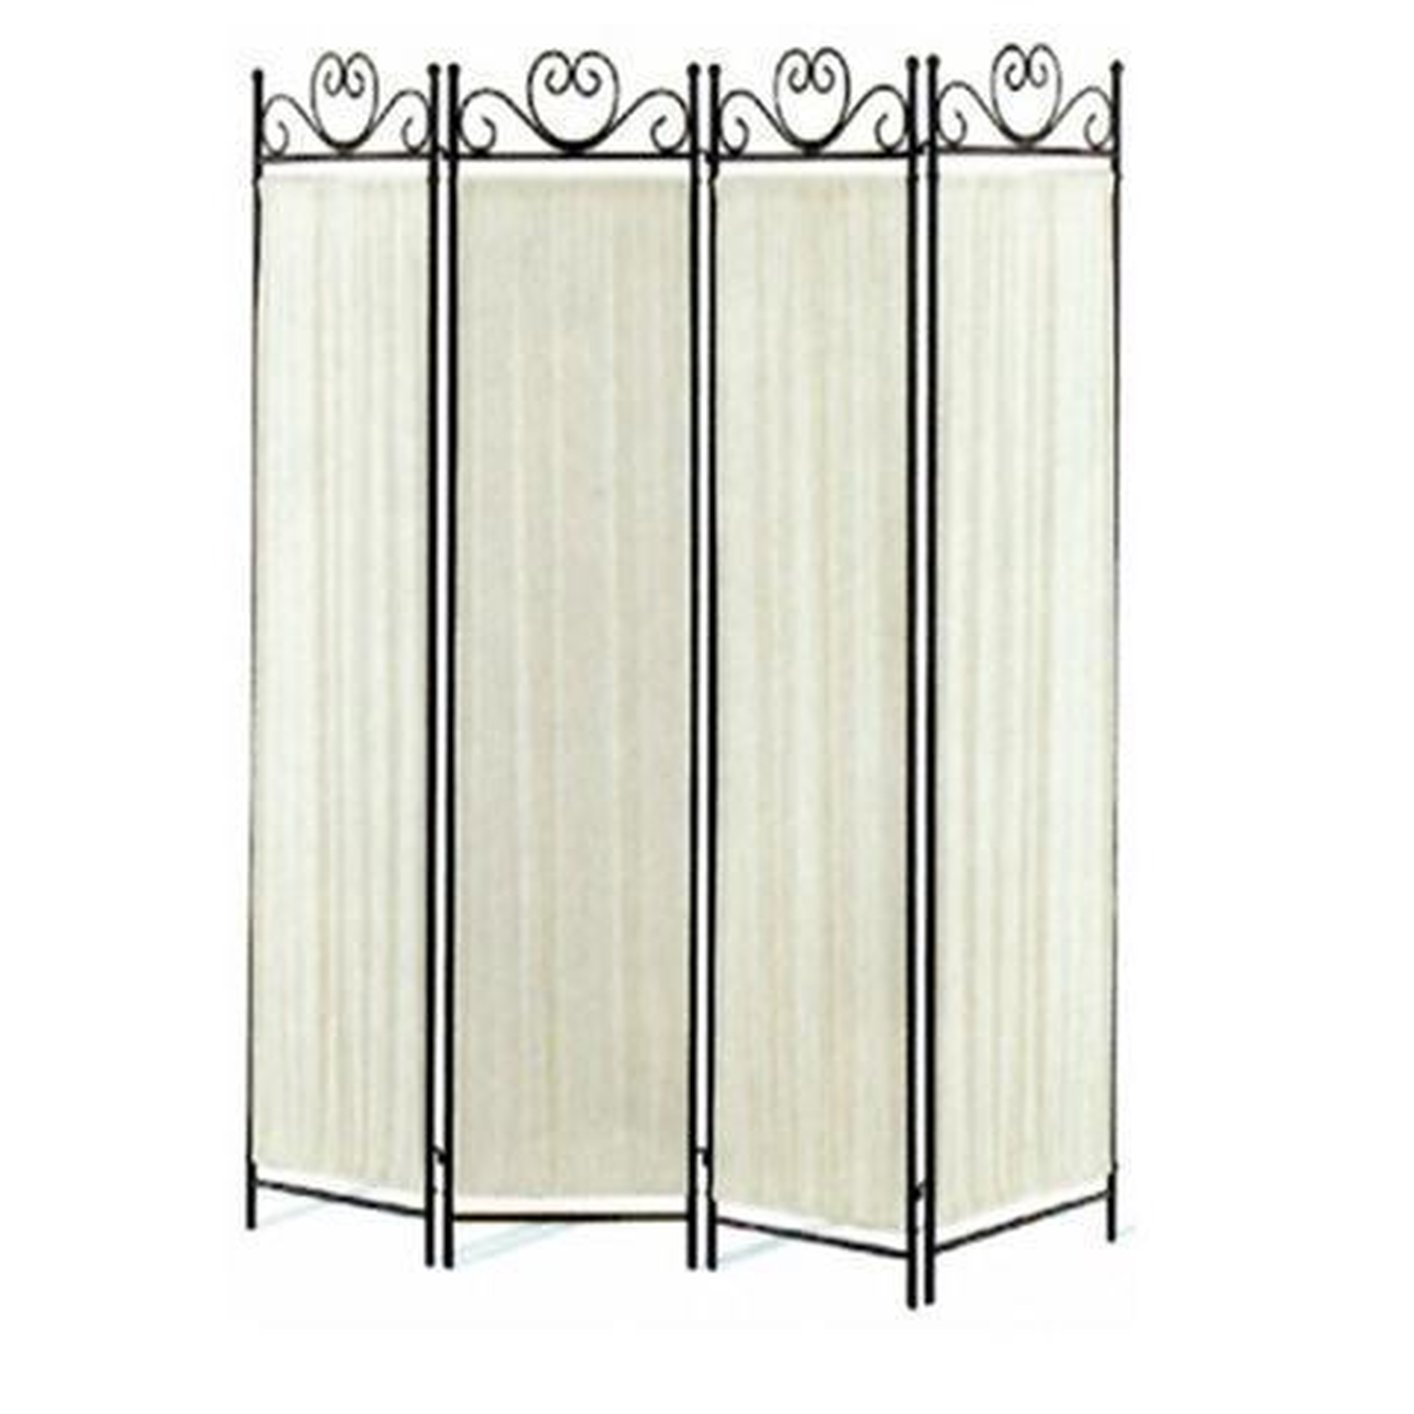 Beige Metal Folding Screen Steal A Sofa Furniture Outlet Los Angeles Ca